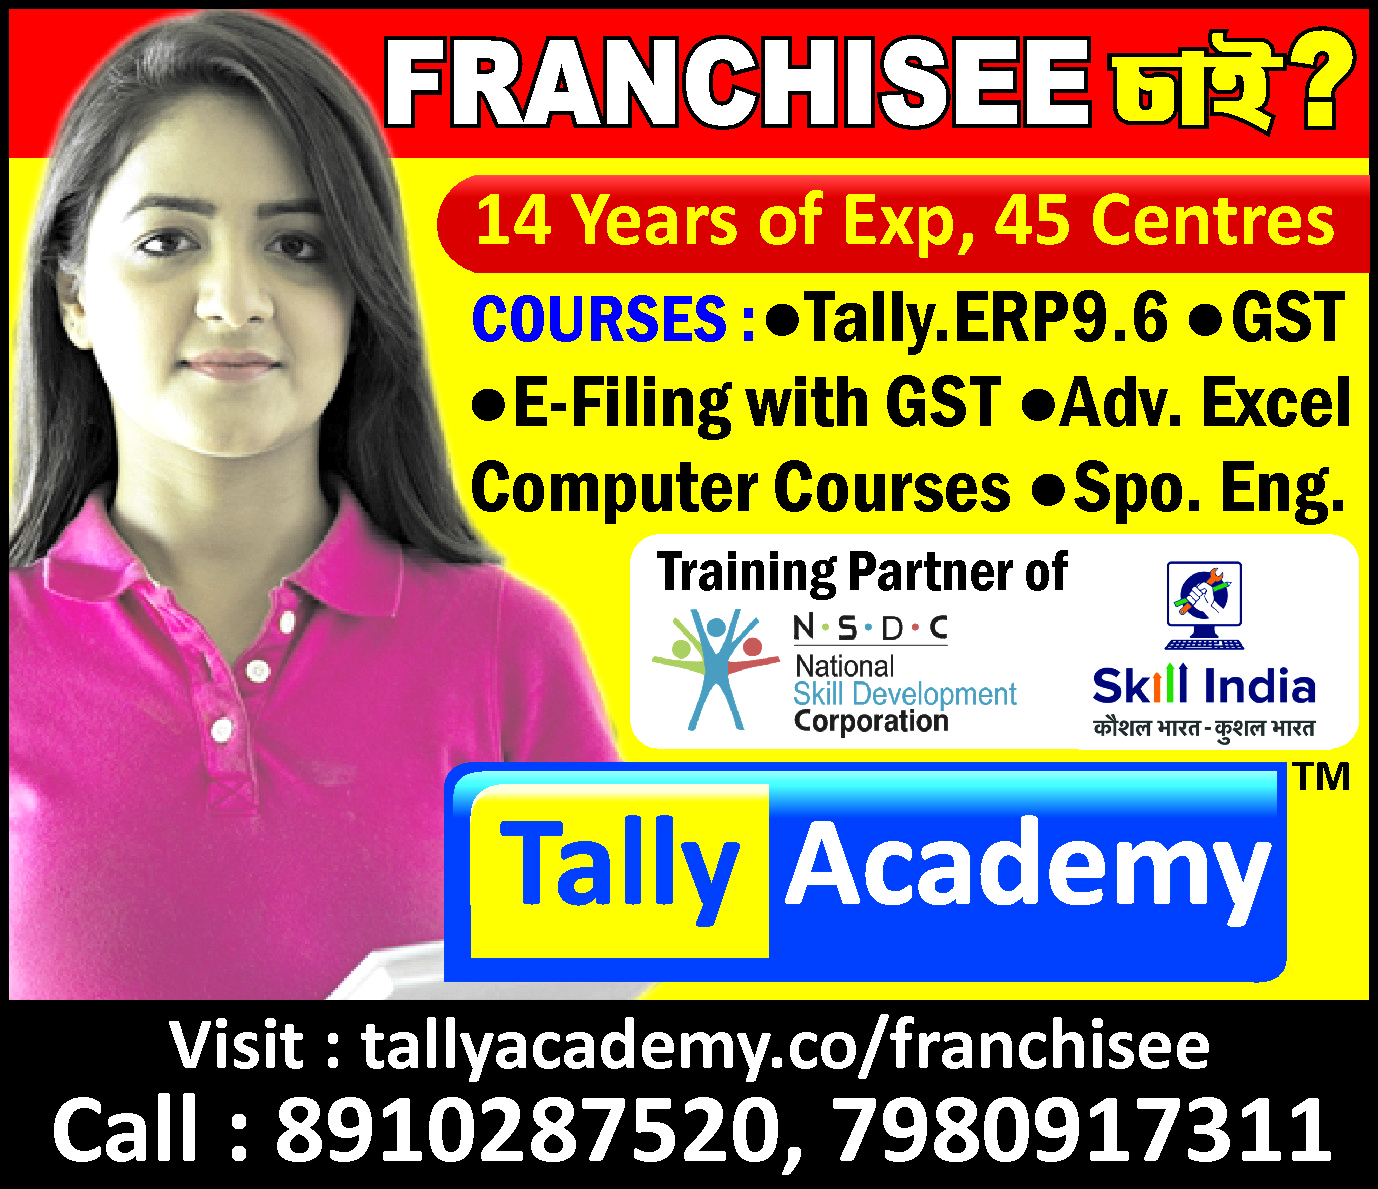 Tally Academy Institute, Tally Academy Franchise, Tally